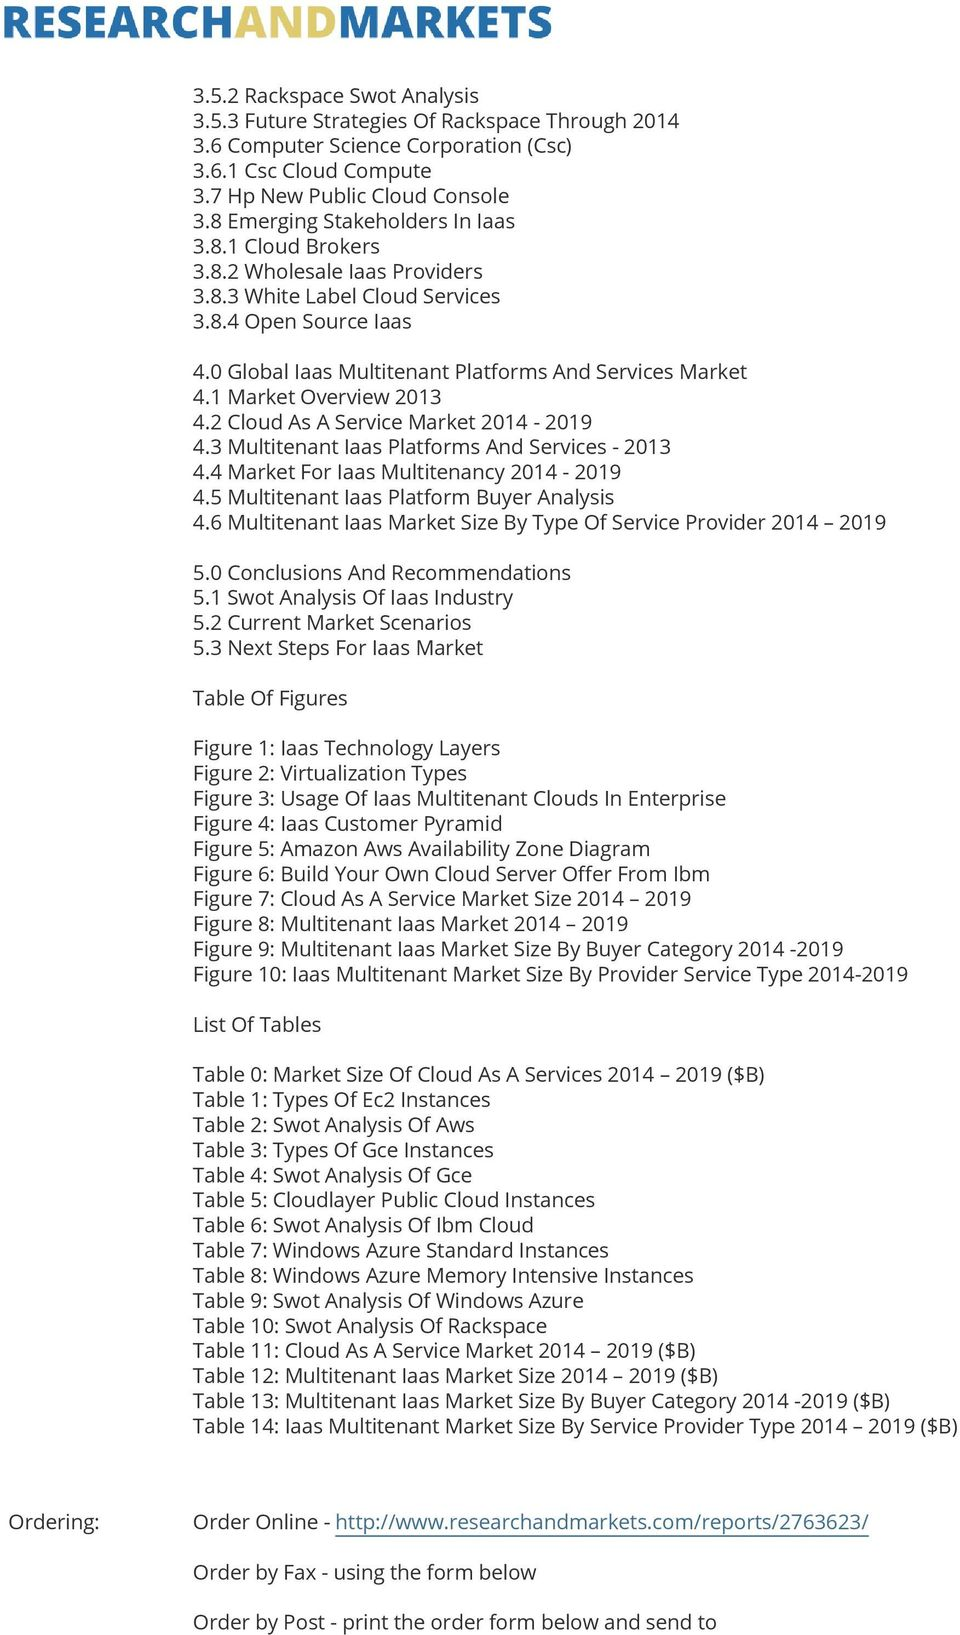 1 Market Overview 2013 4.2 Cloud As A Service Market 2014-2019 4.3 Multitenant Iaas Platforms And Services - 2013 4.4 Market For Iaas Multitenancy 2014-2019 4.